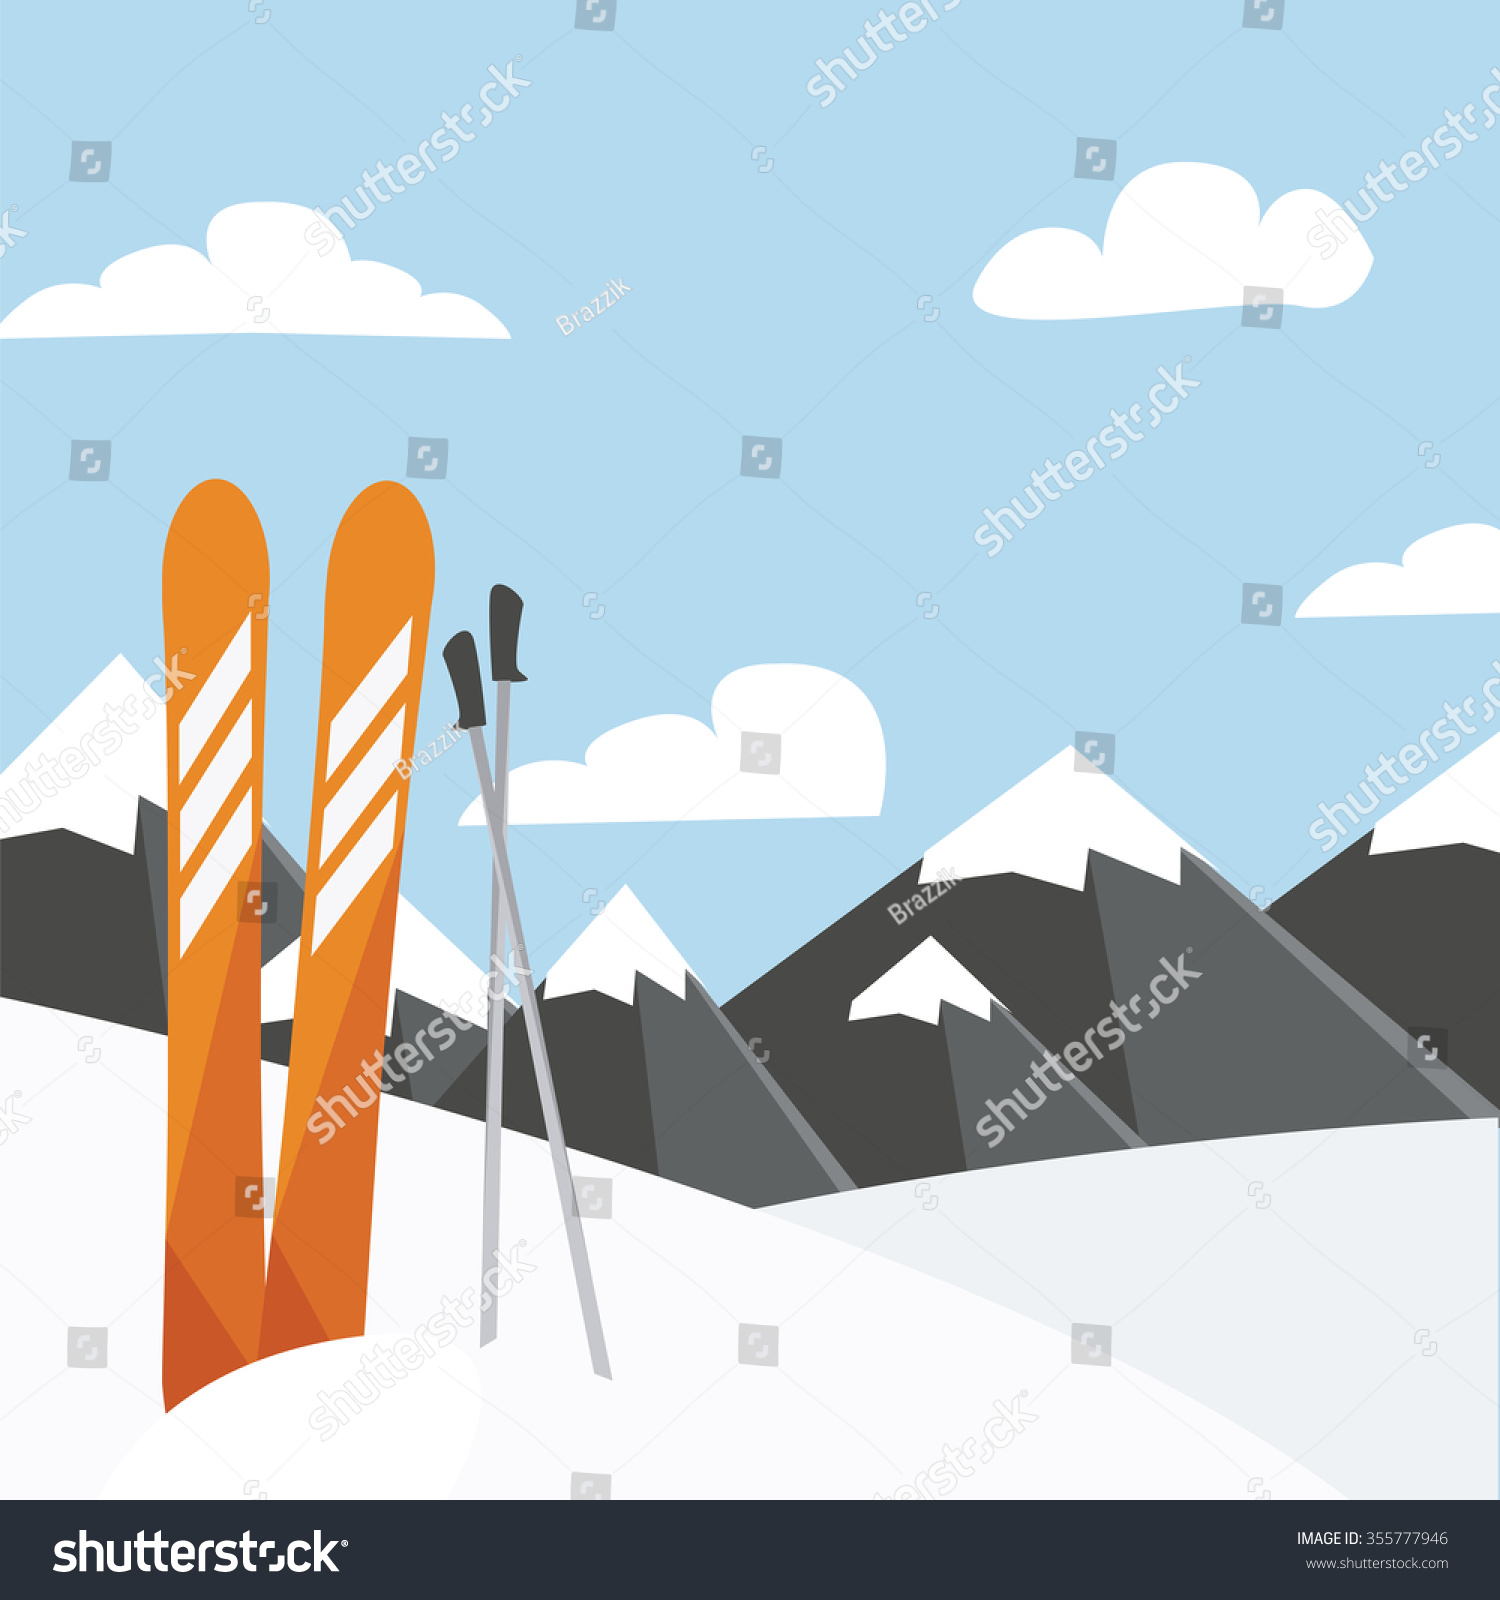 An Overview of Different Skiing Styles